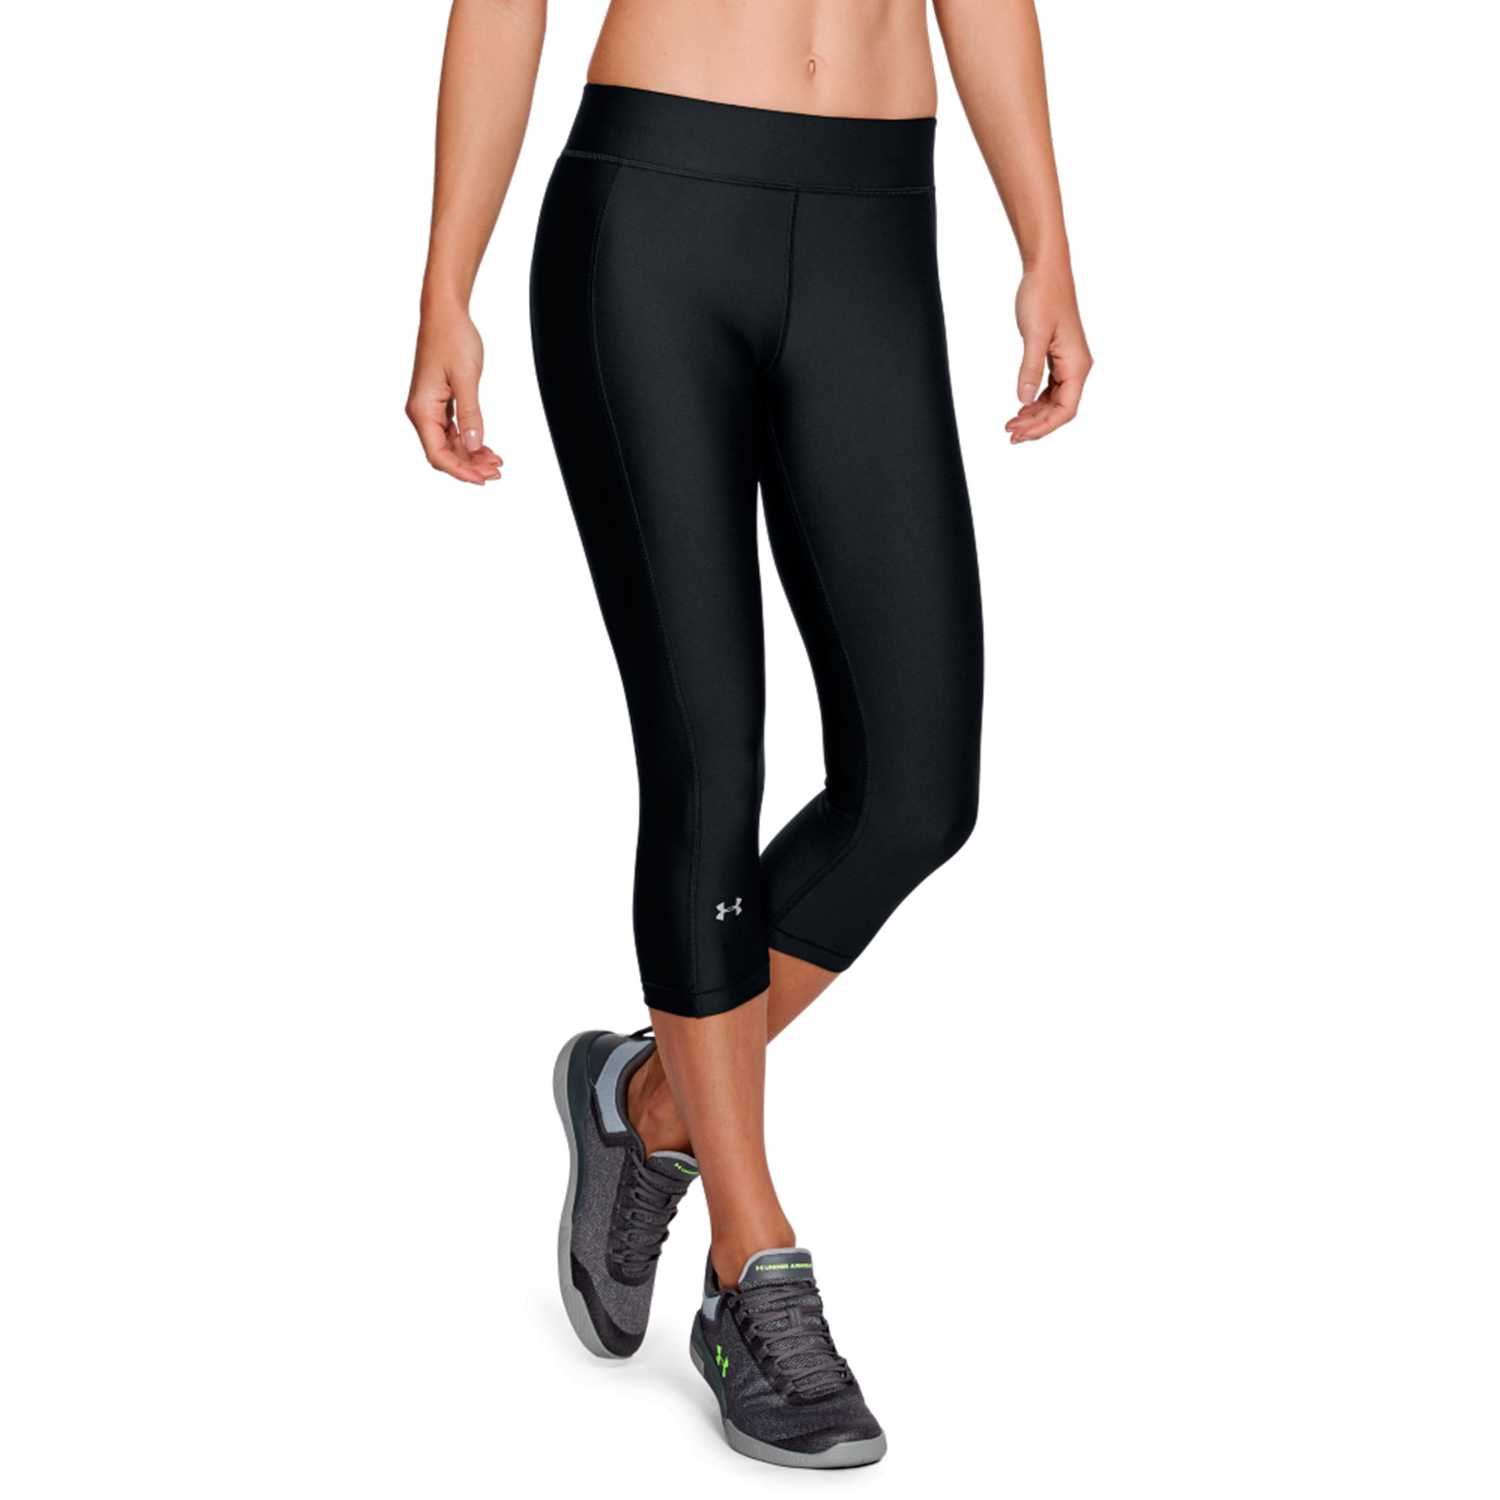 Under Armour Ua Hg Armour Capri Negro / blanco Leggings deportivos